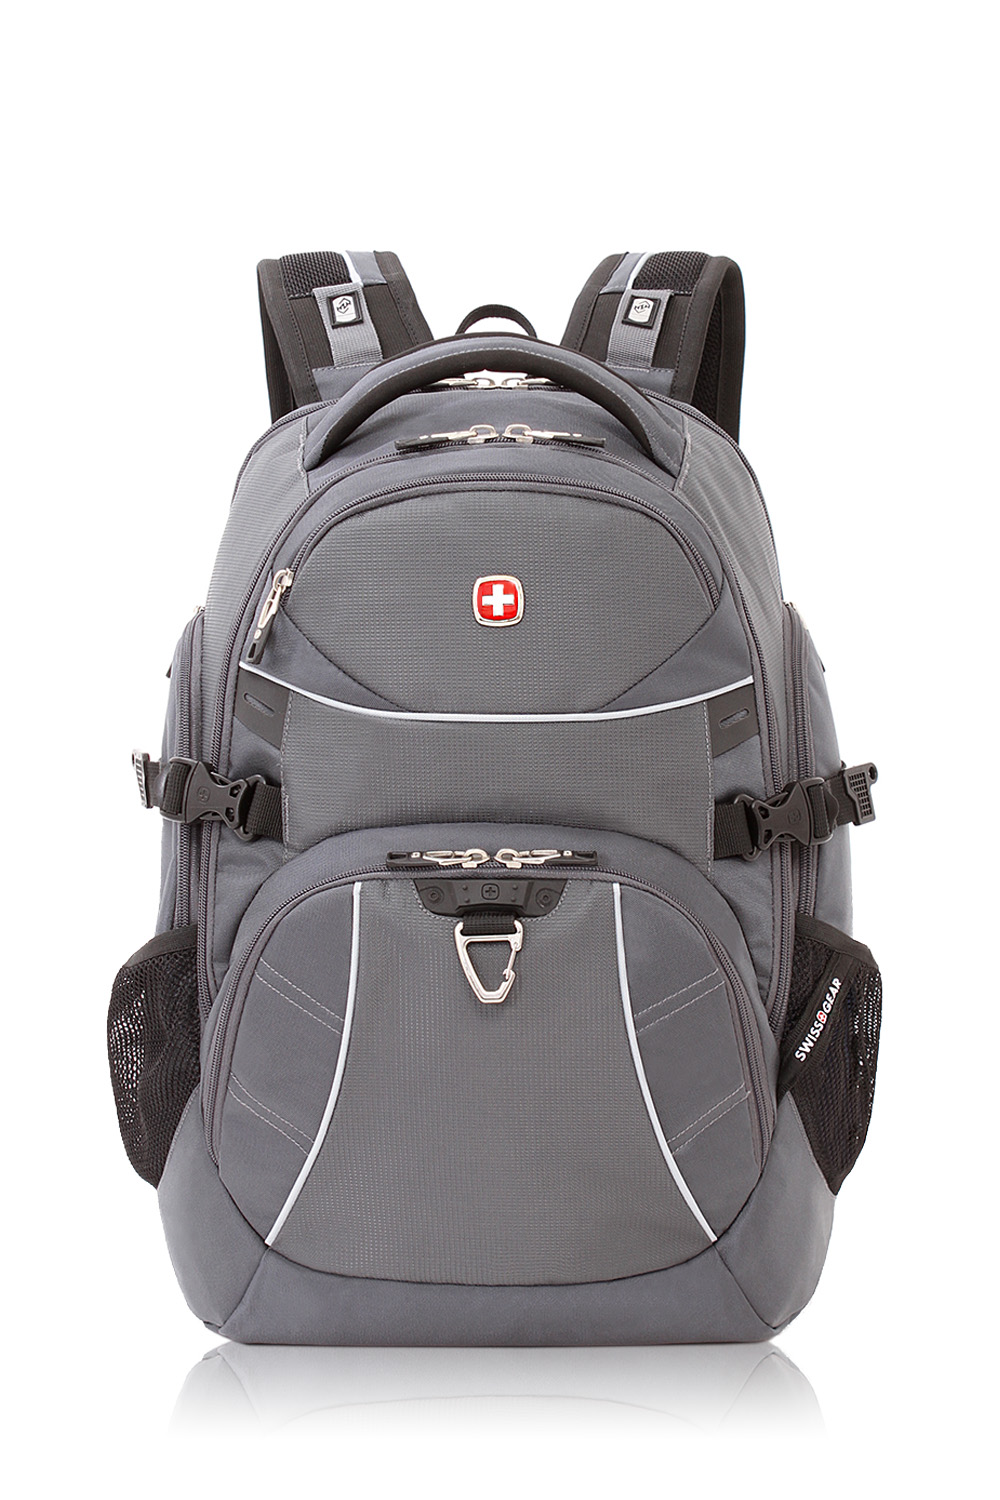 SWISSGEAR 5901 Laptop Backpack - Grey